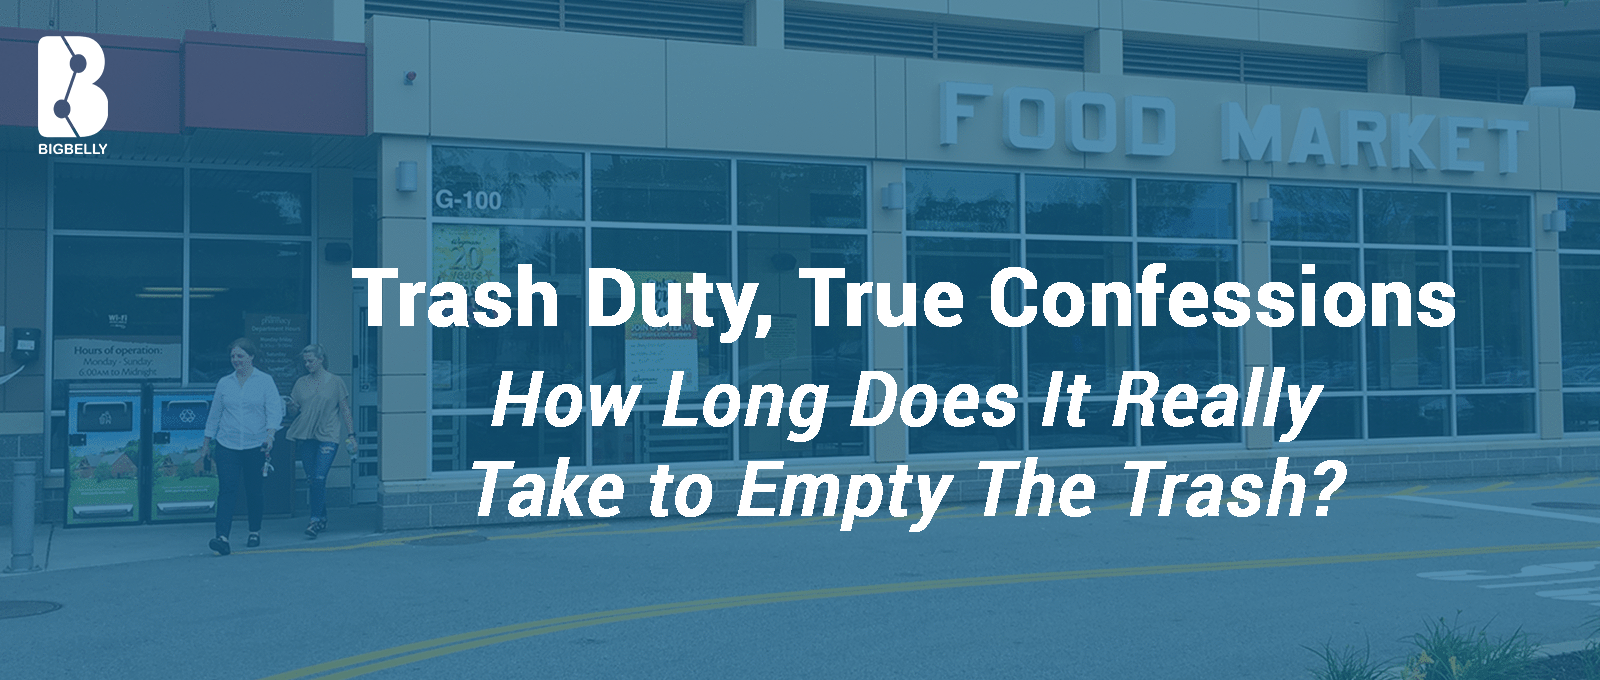 Trash Duty, True Confessions - How Long Does It Really Take to Empty The Trash.png